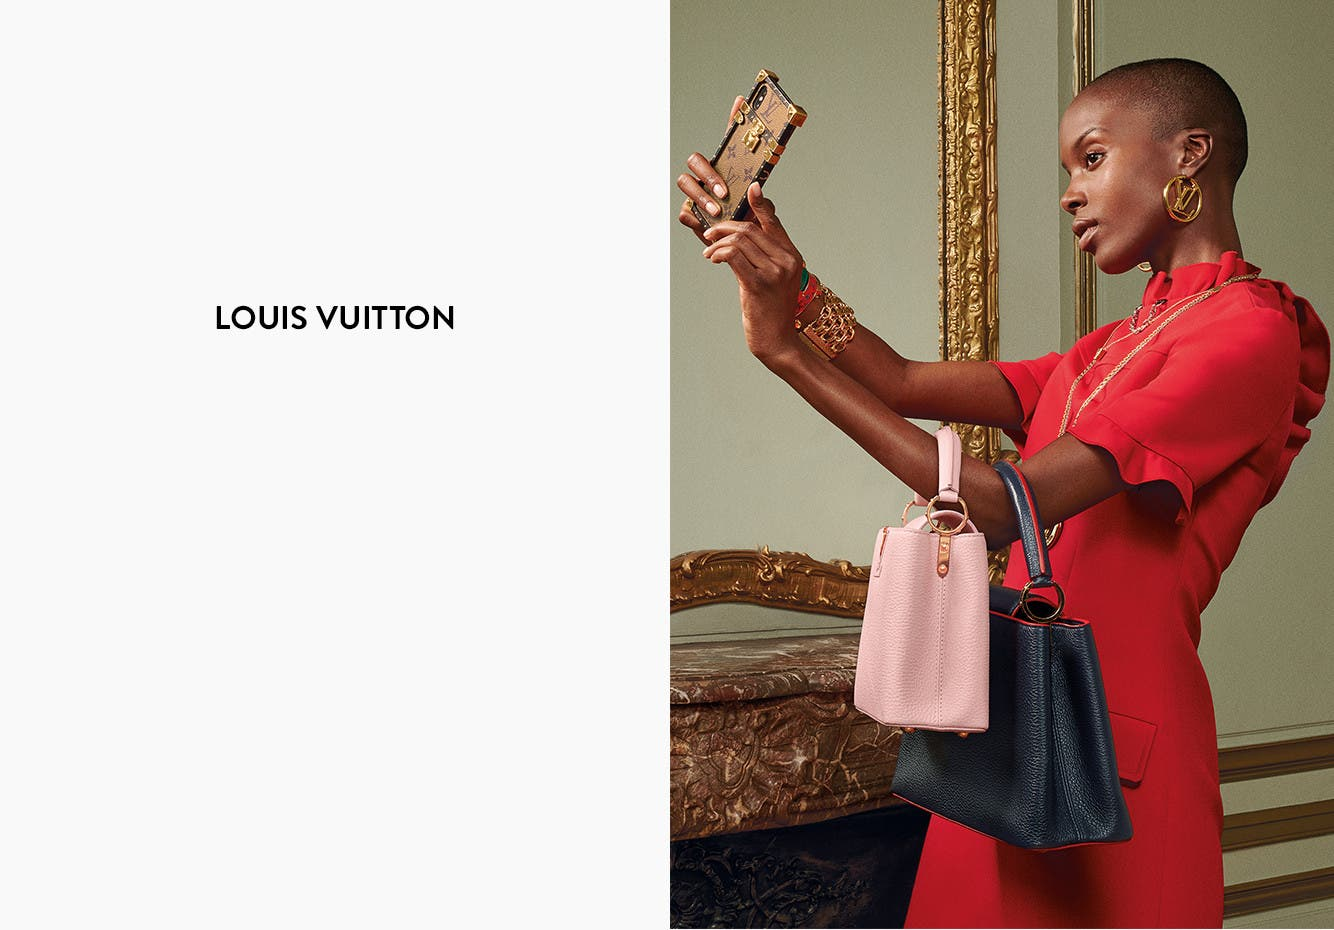 Louis Vuitton for women.